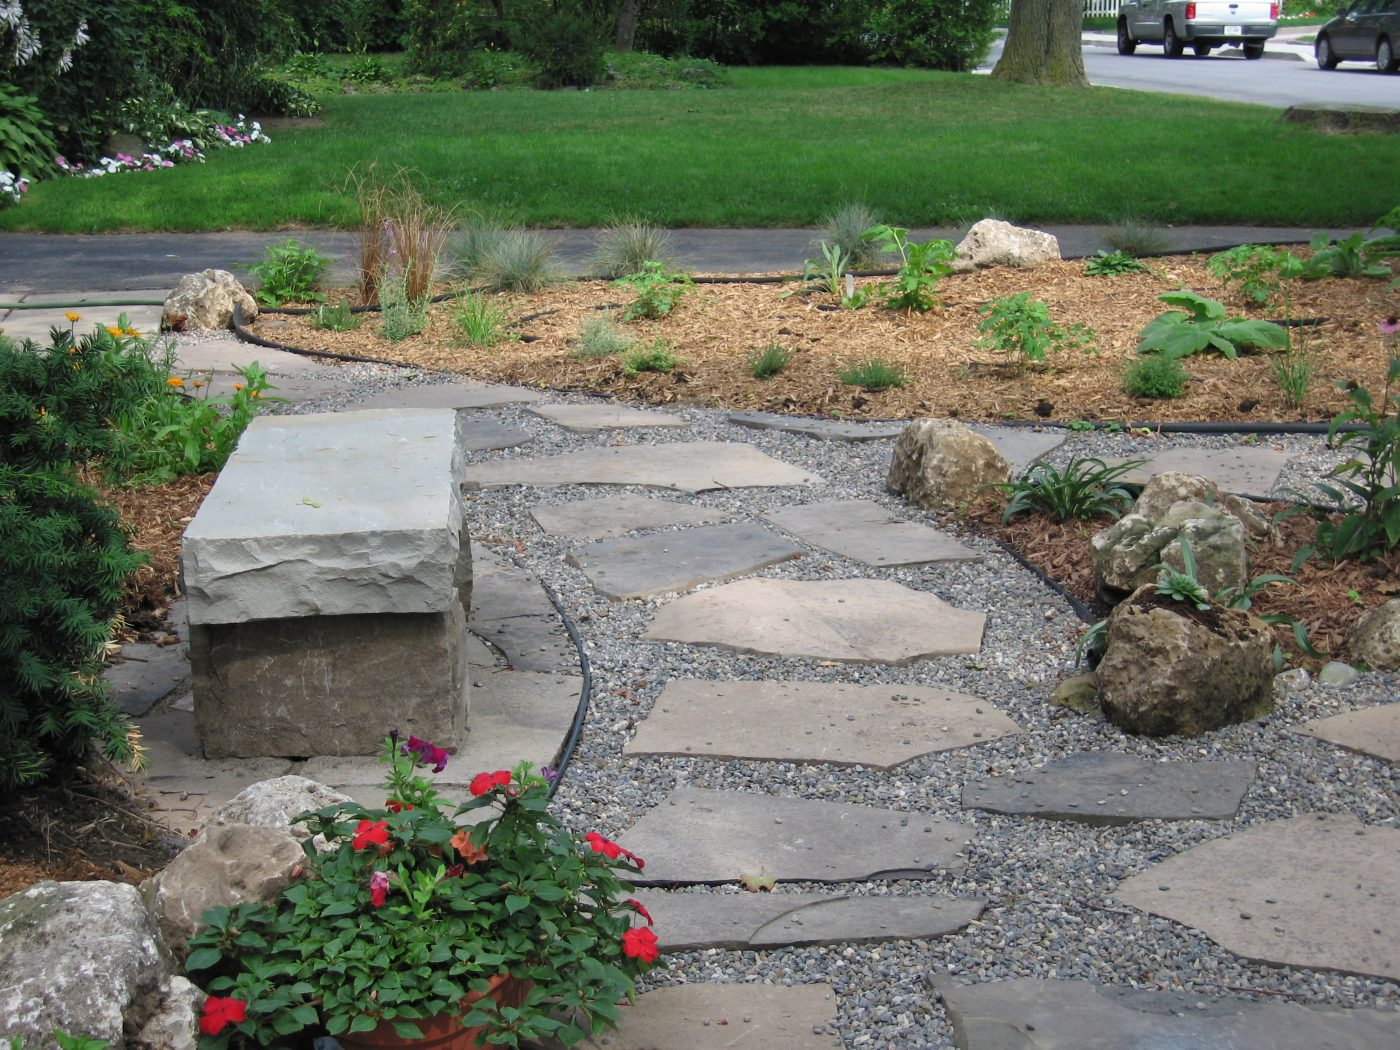 Landscape Construction- Illiatovich III